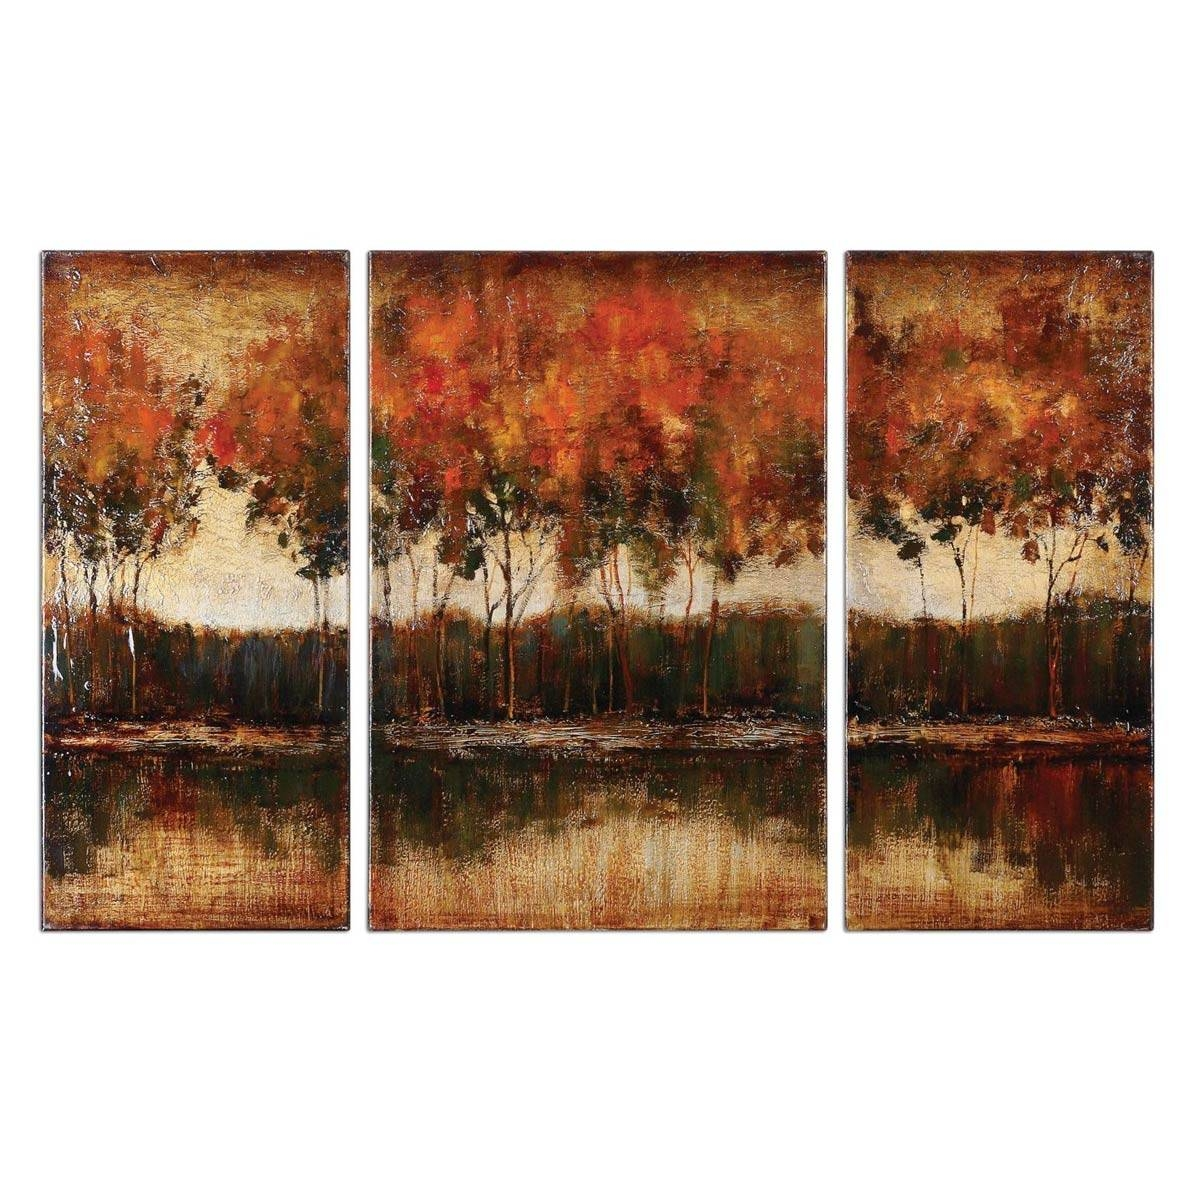 Trendy Canvas Wall Art Sets Cheap Buy Canvas Wall Art Floral In 2018 Large Canvas Wall Art Sets (View 9 of 15)